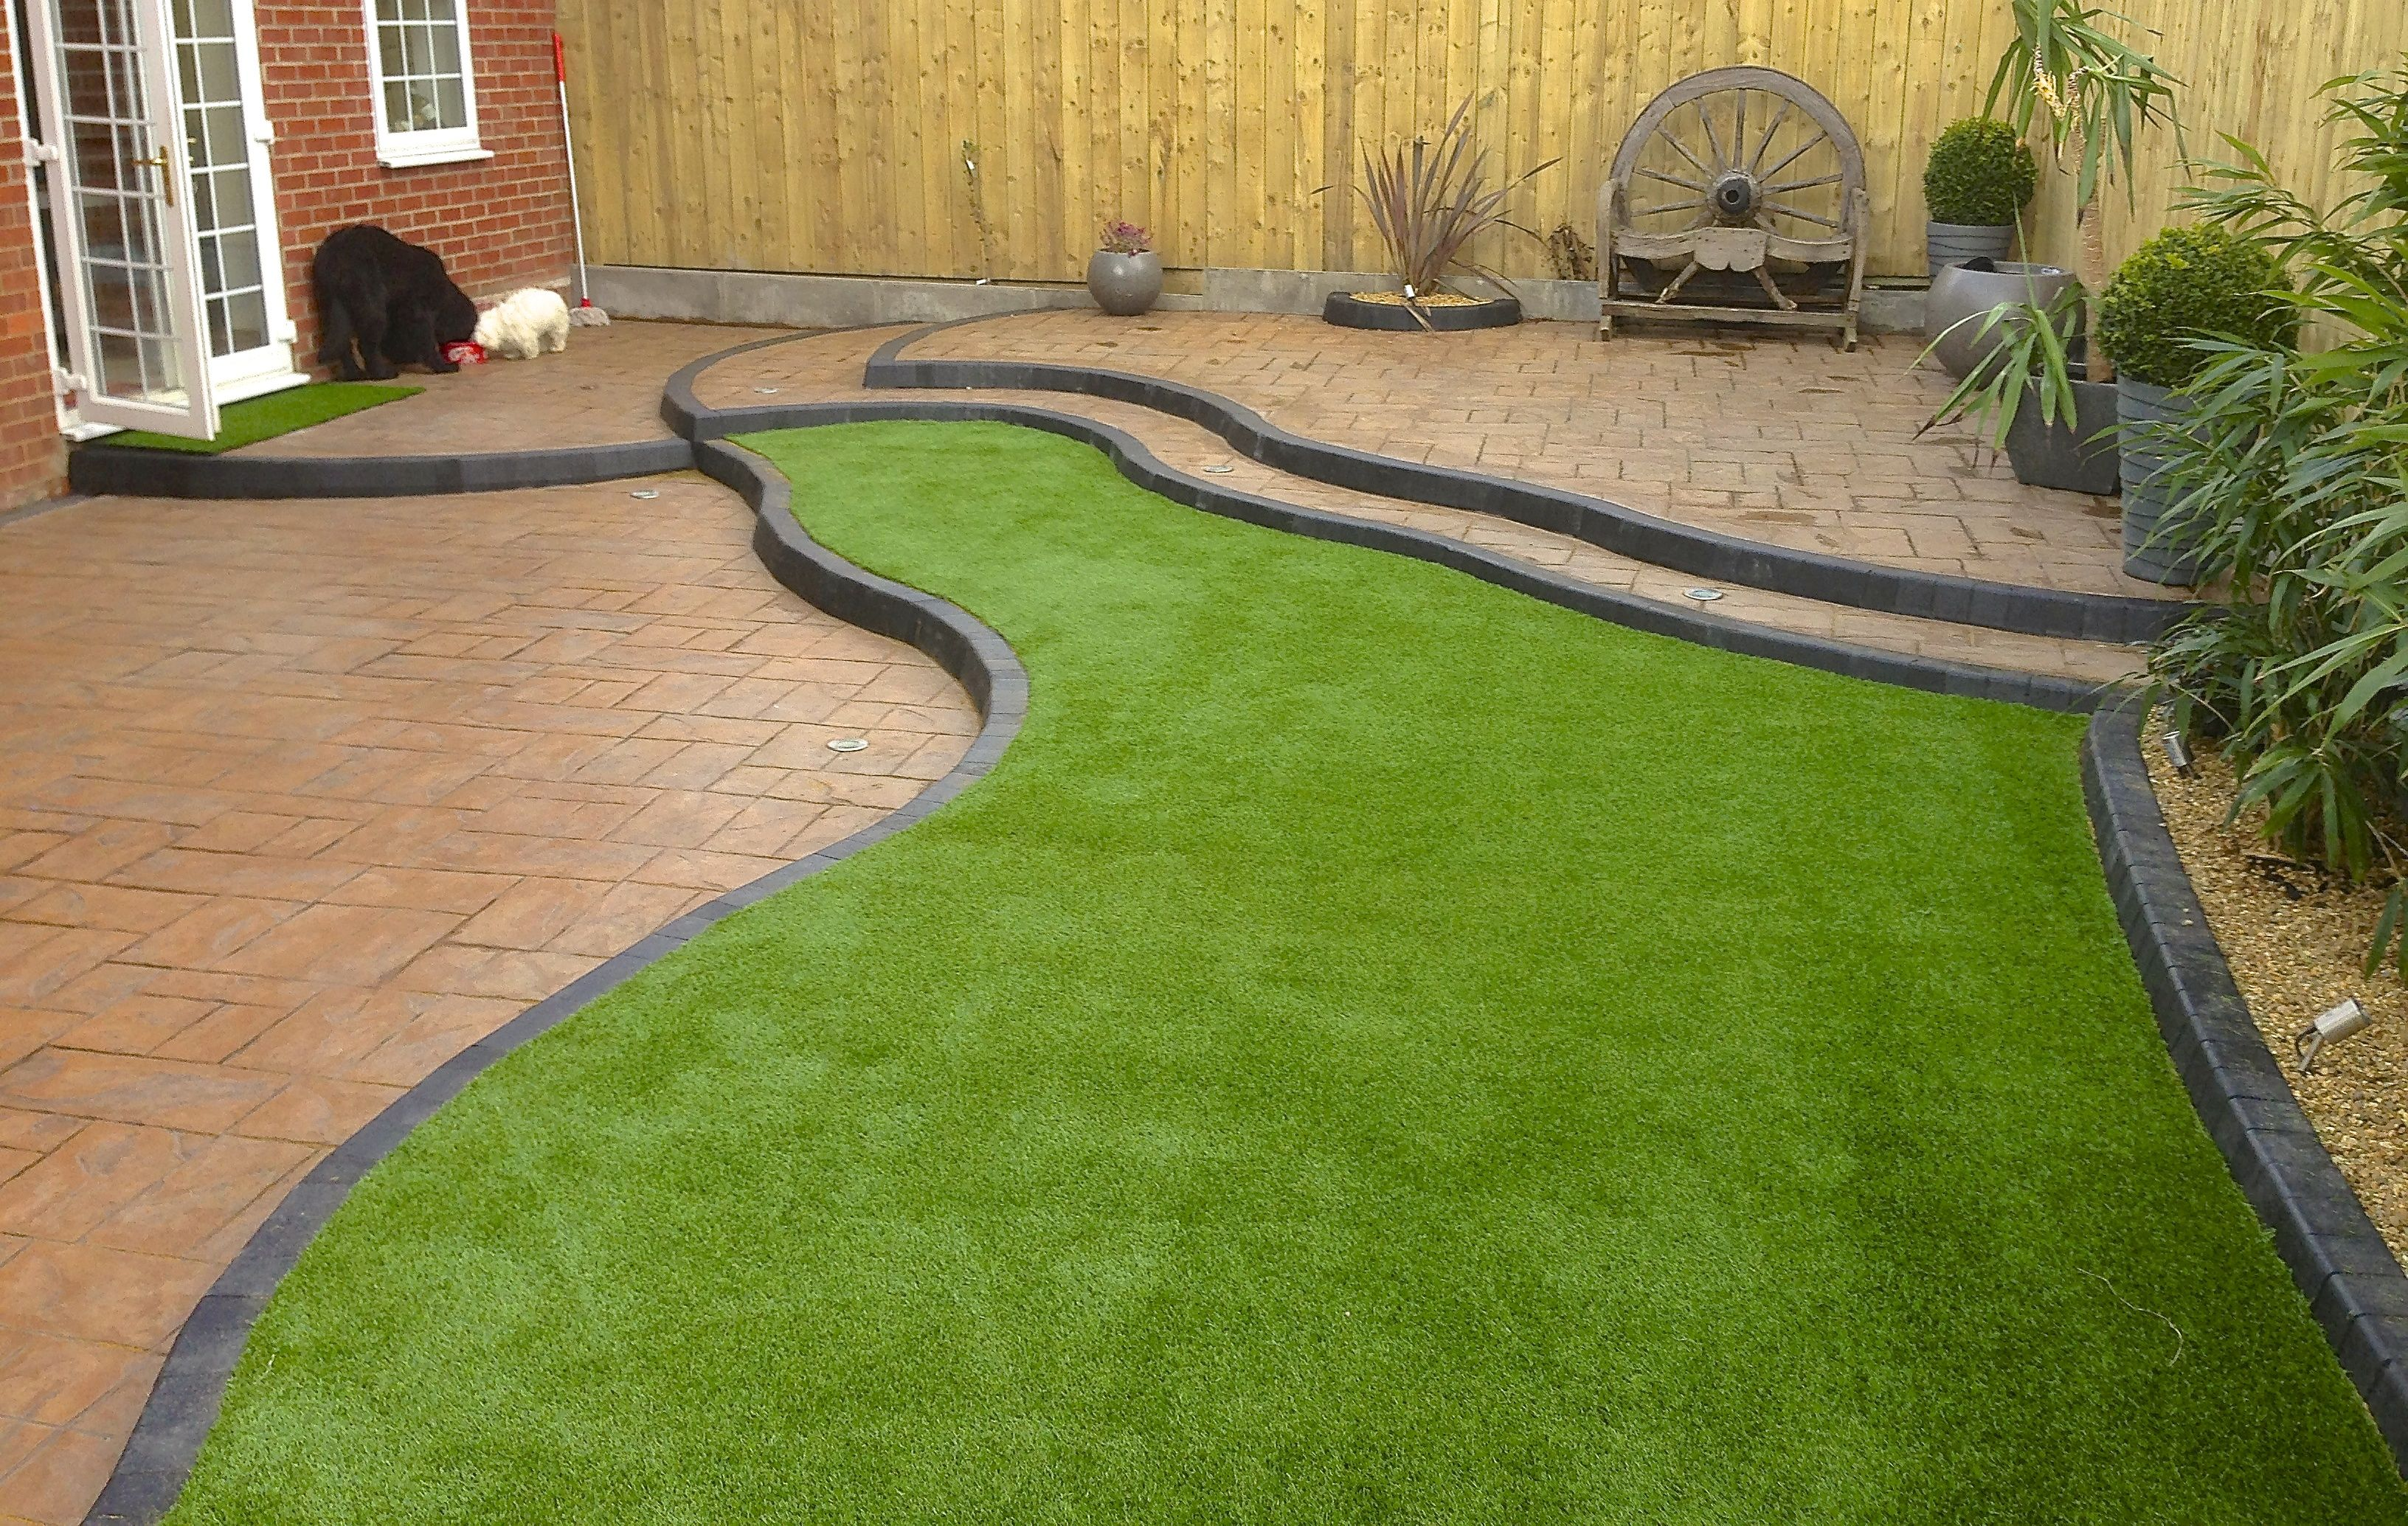 Artificial Grass A Great Way to Reduce Your Carbon Footprint